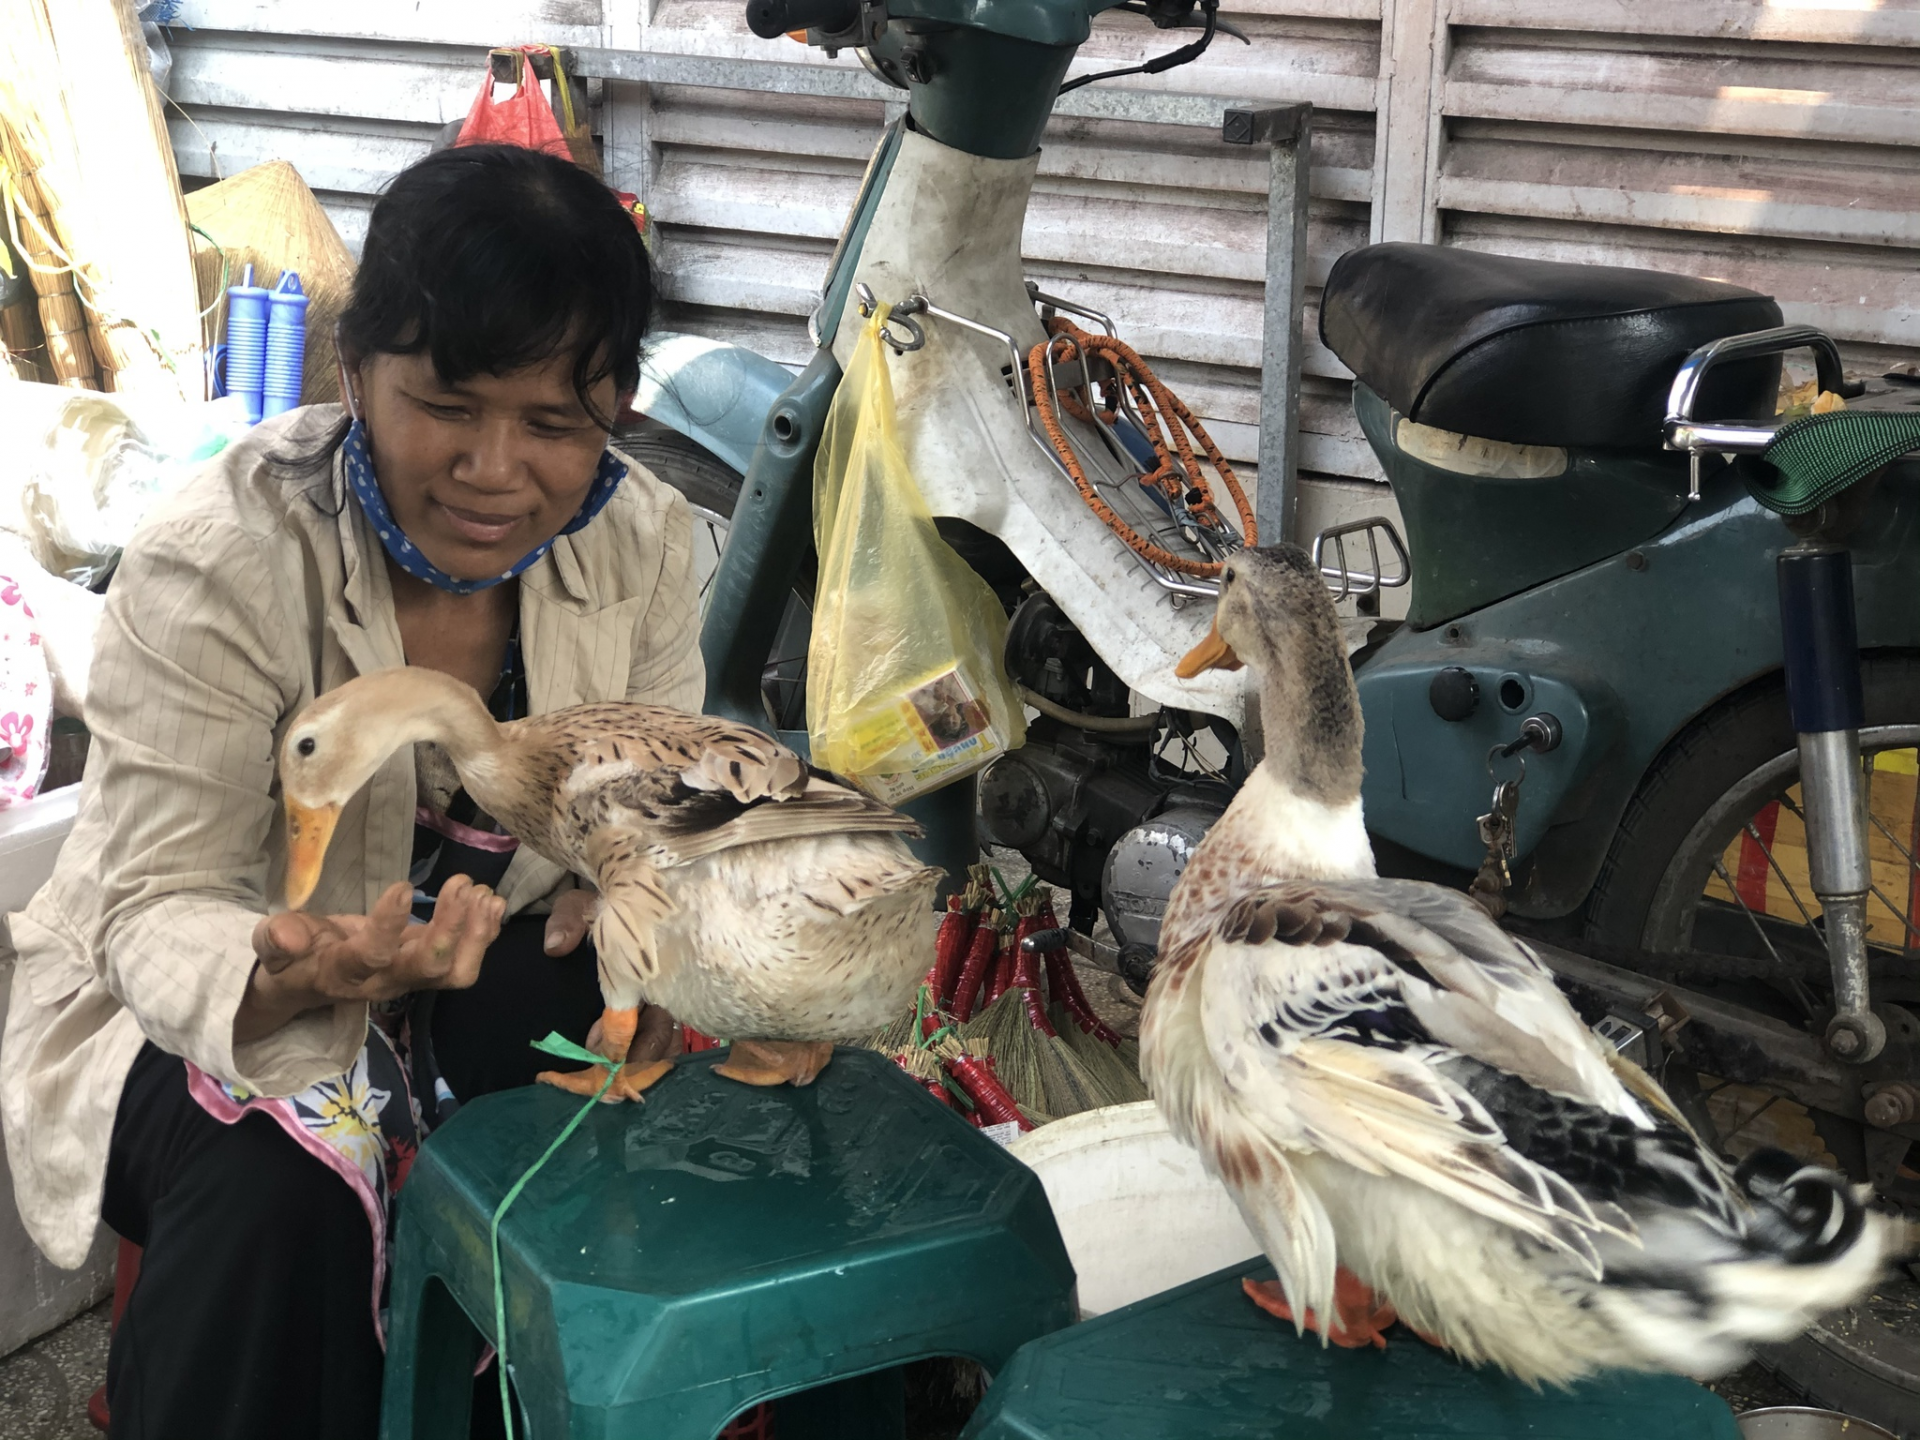 To Tuyet, the ducks are more than just pets. Photo: Quyen Tran